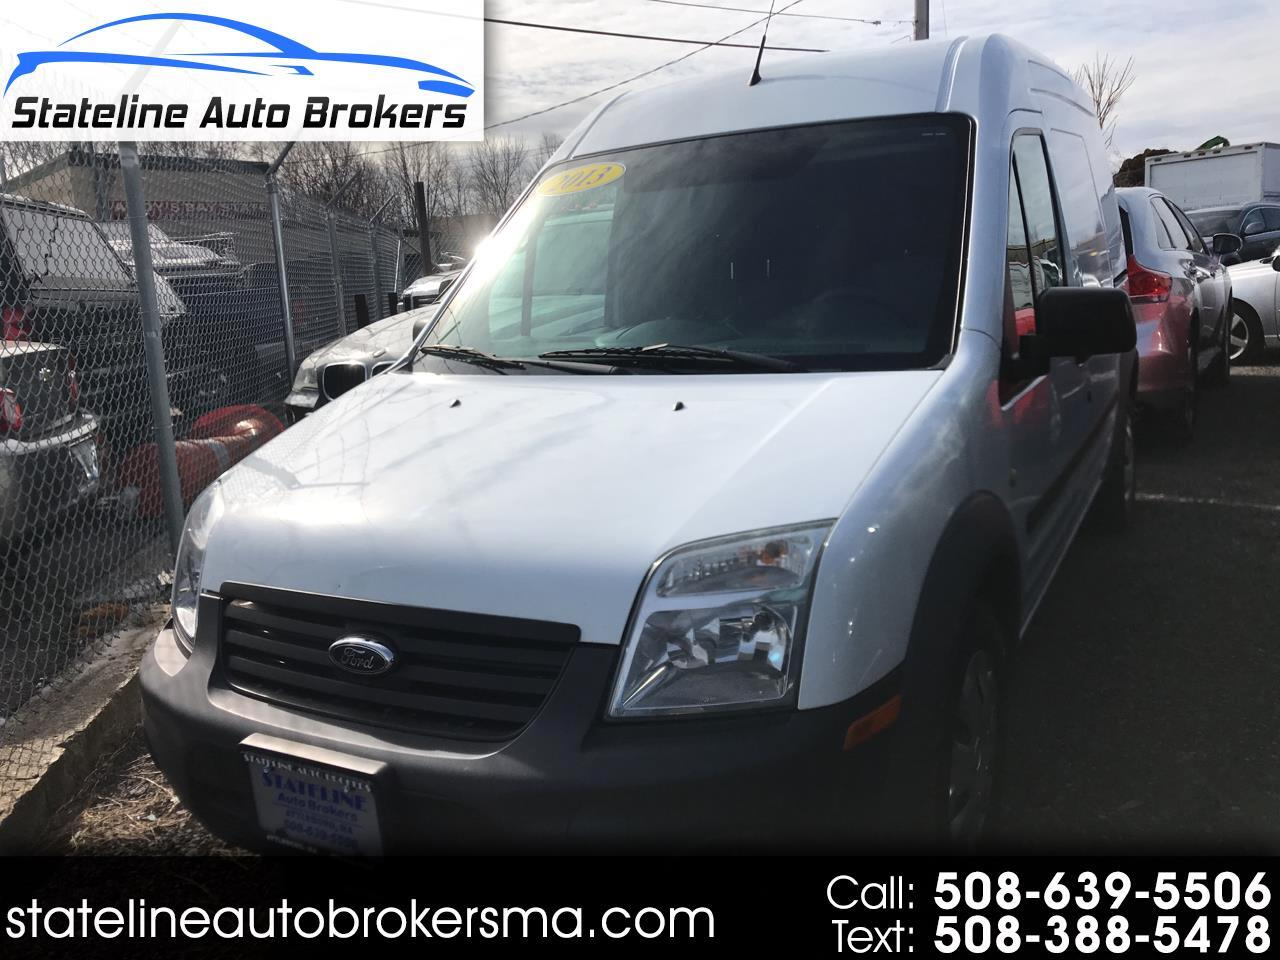 "2013 Ford Transit Connect 114.6"" XL w/o side or rear door glass"